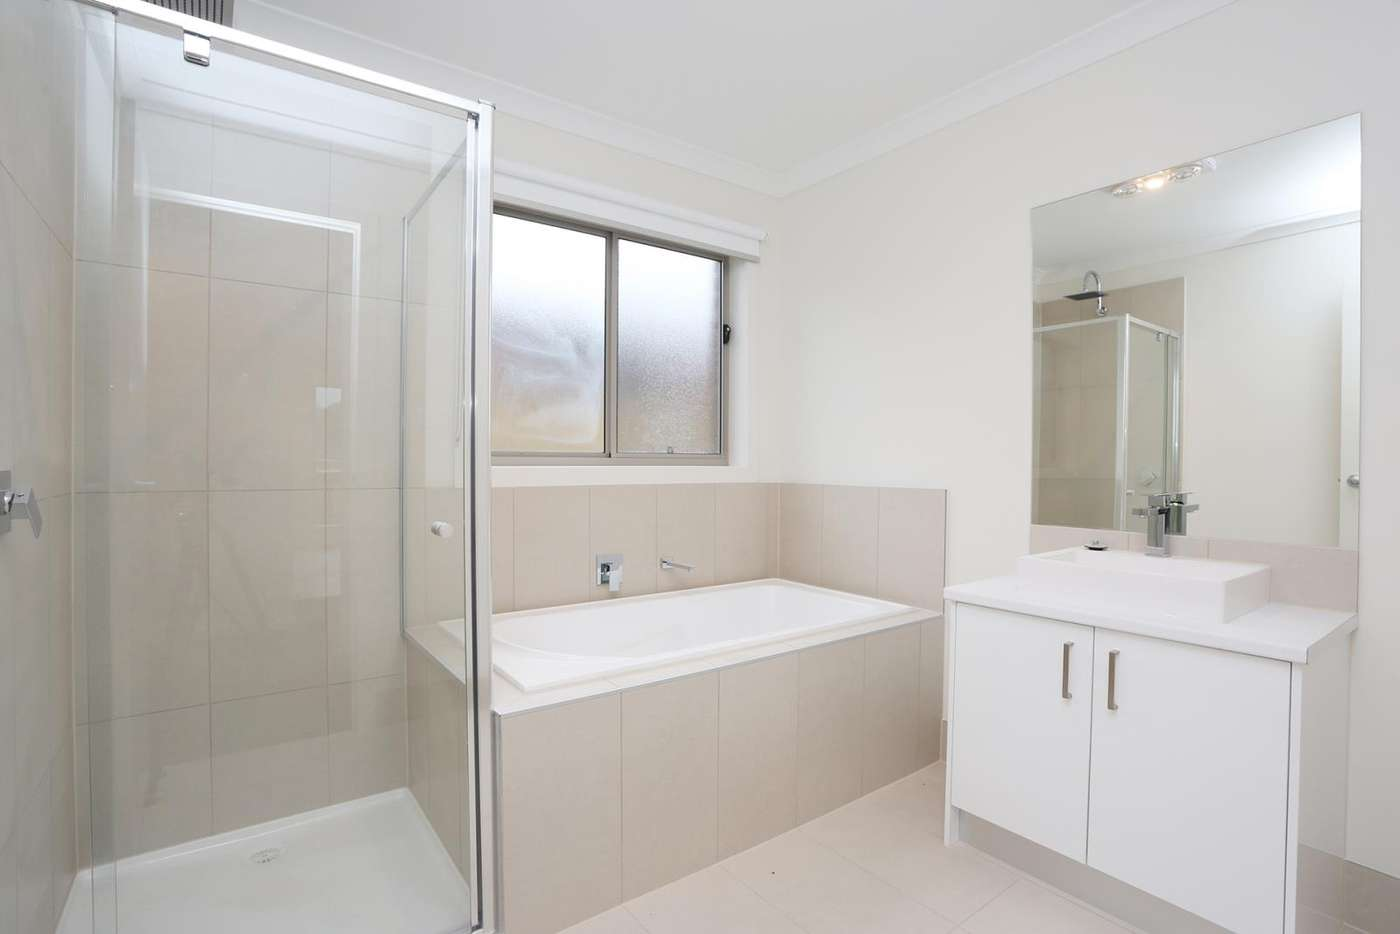 Fifth view of Homely house listing, 20 Clancy Way, Doreen VIC 3754